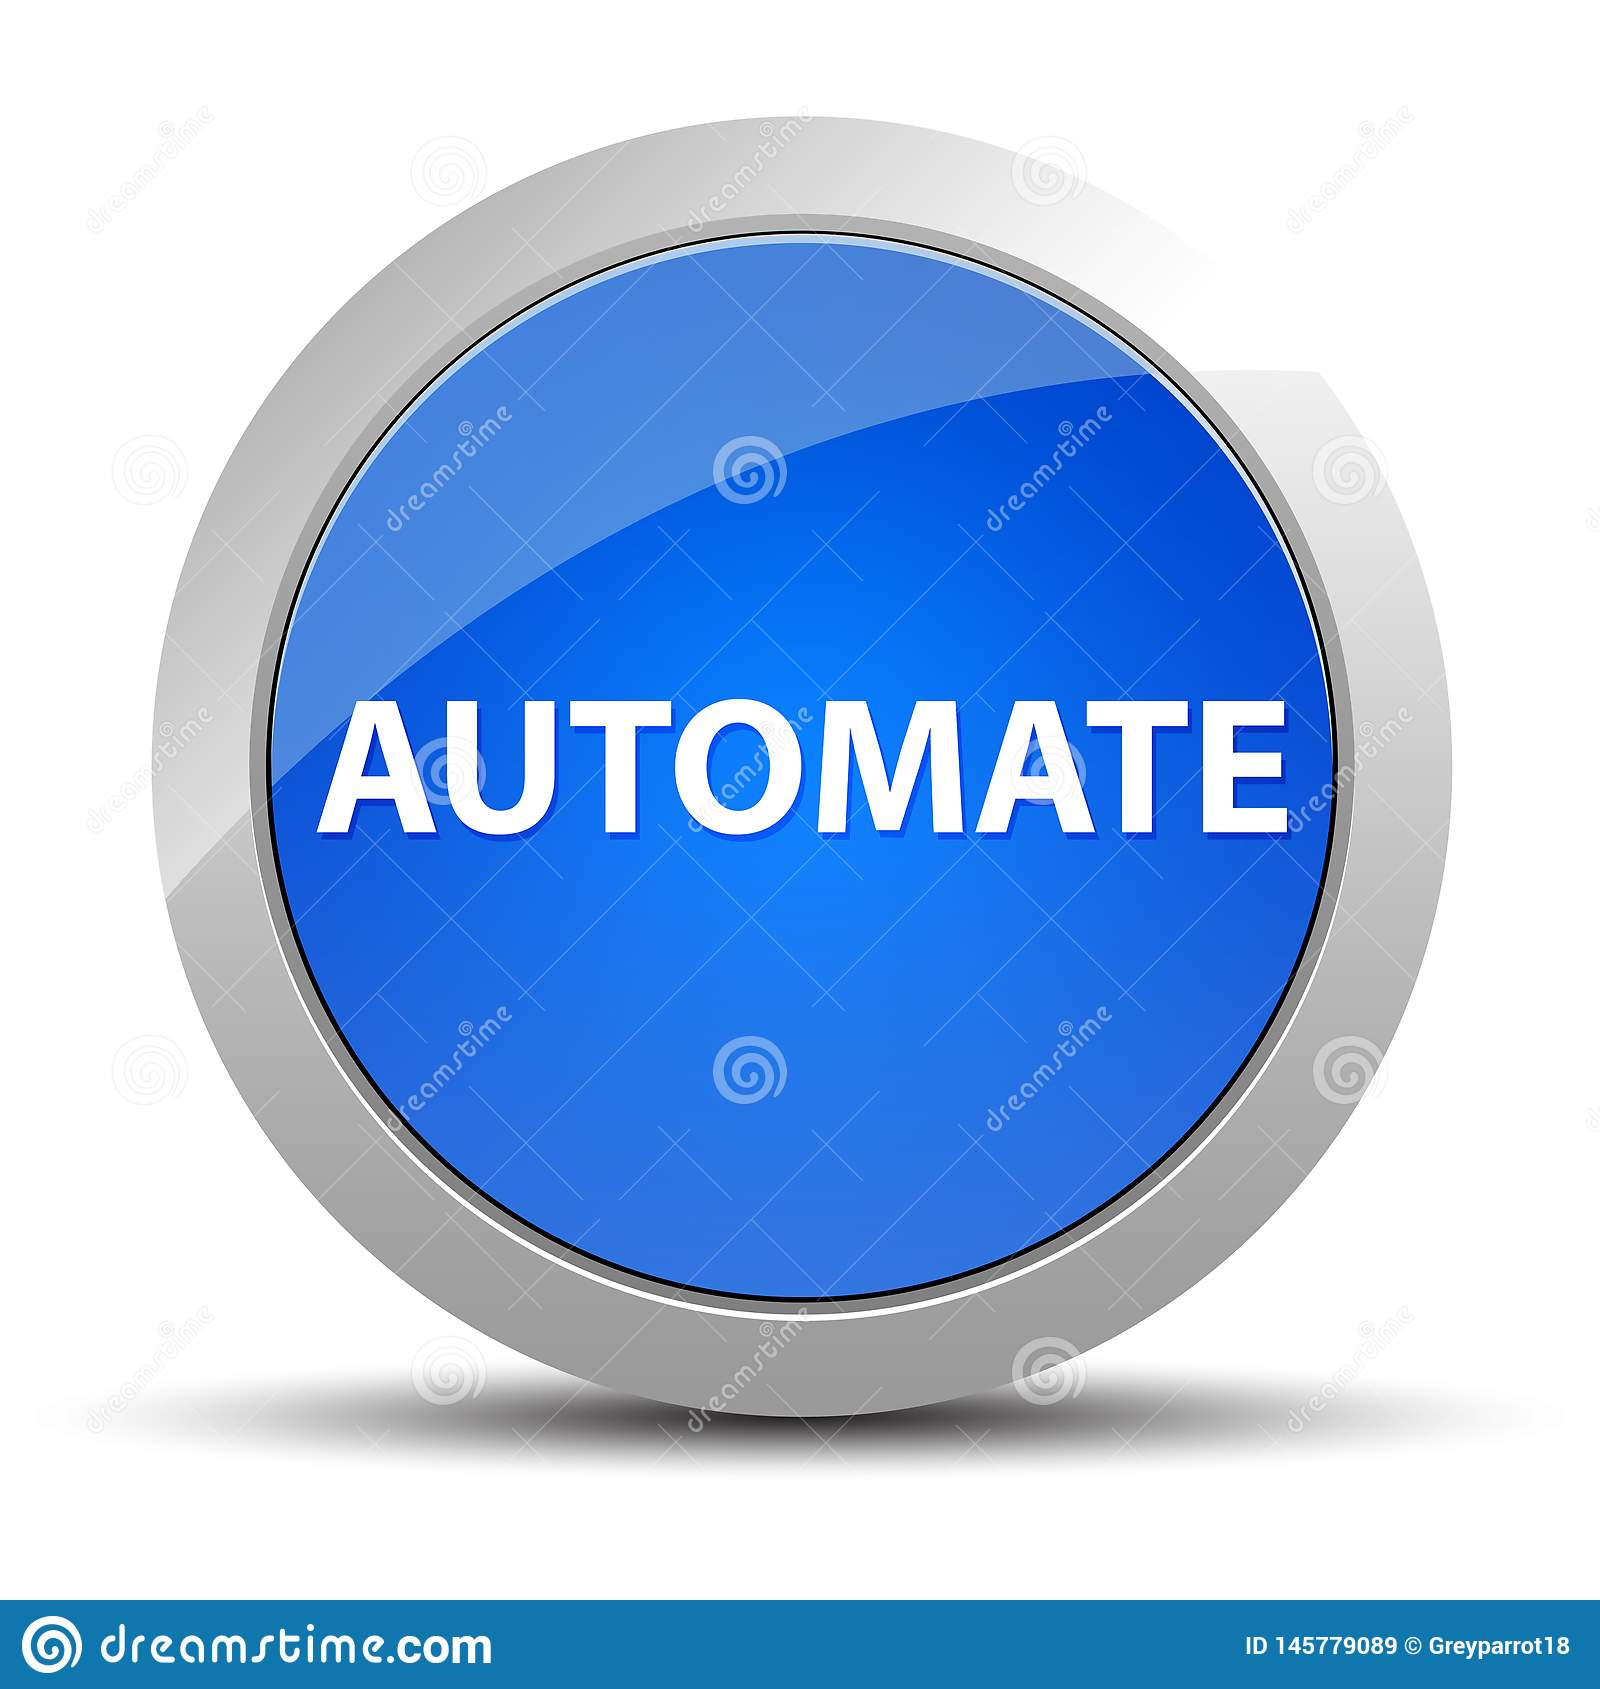 Automate blue round button